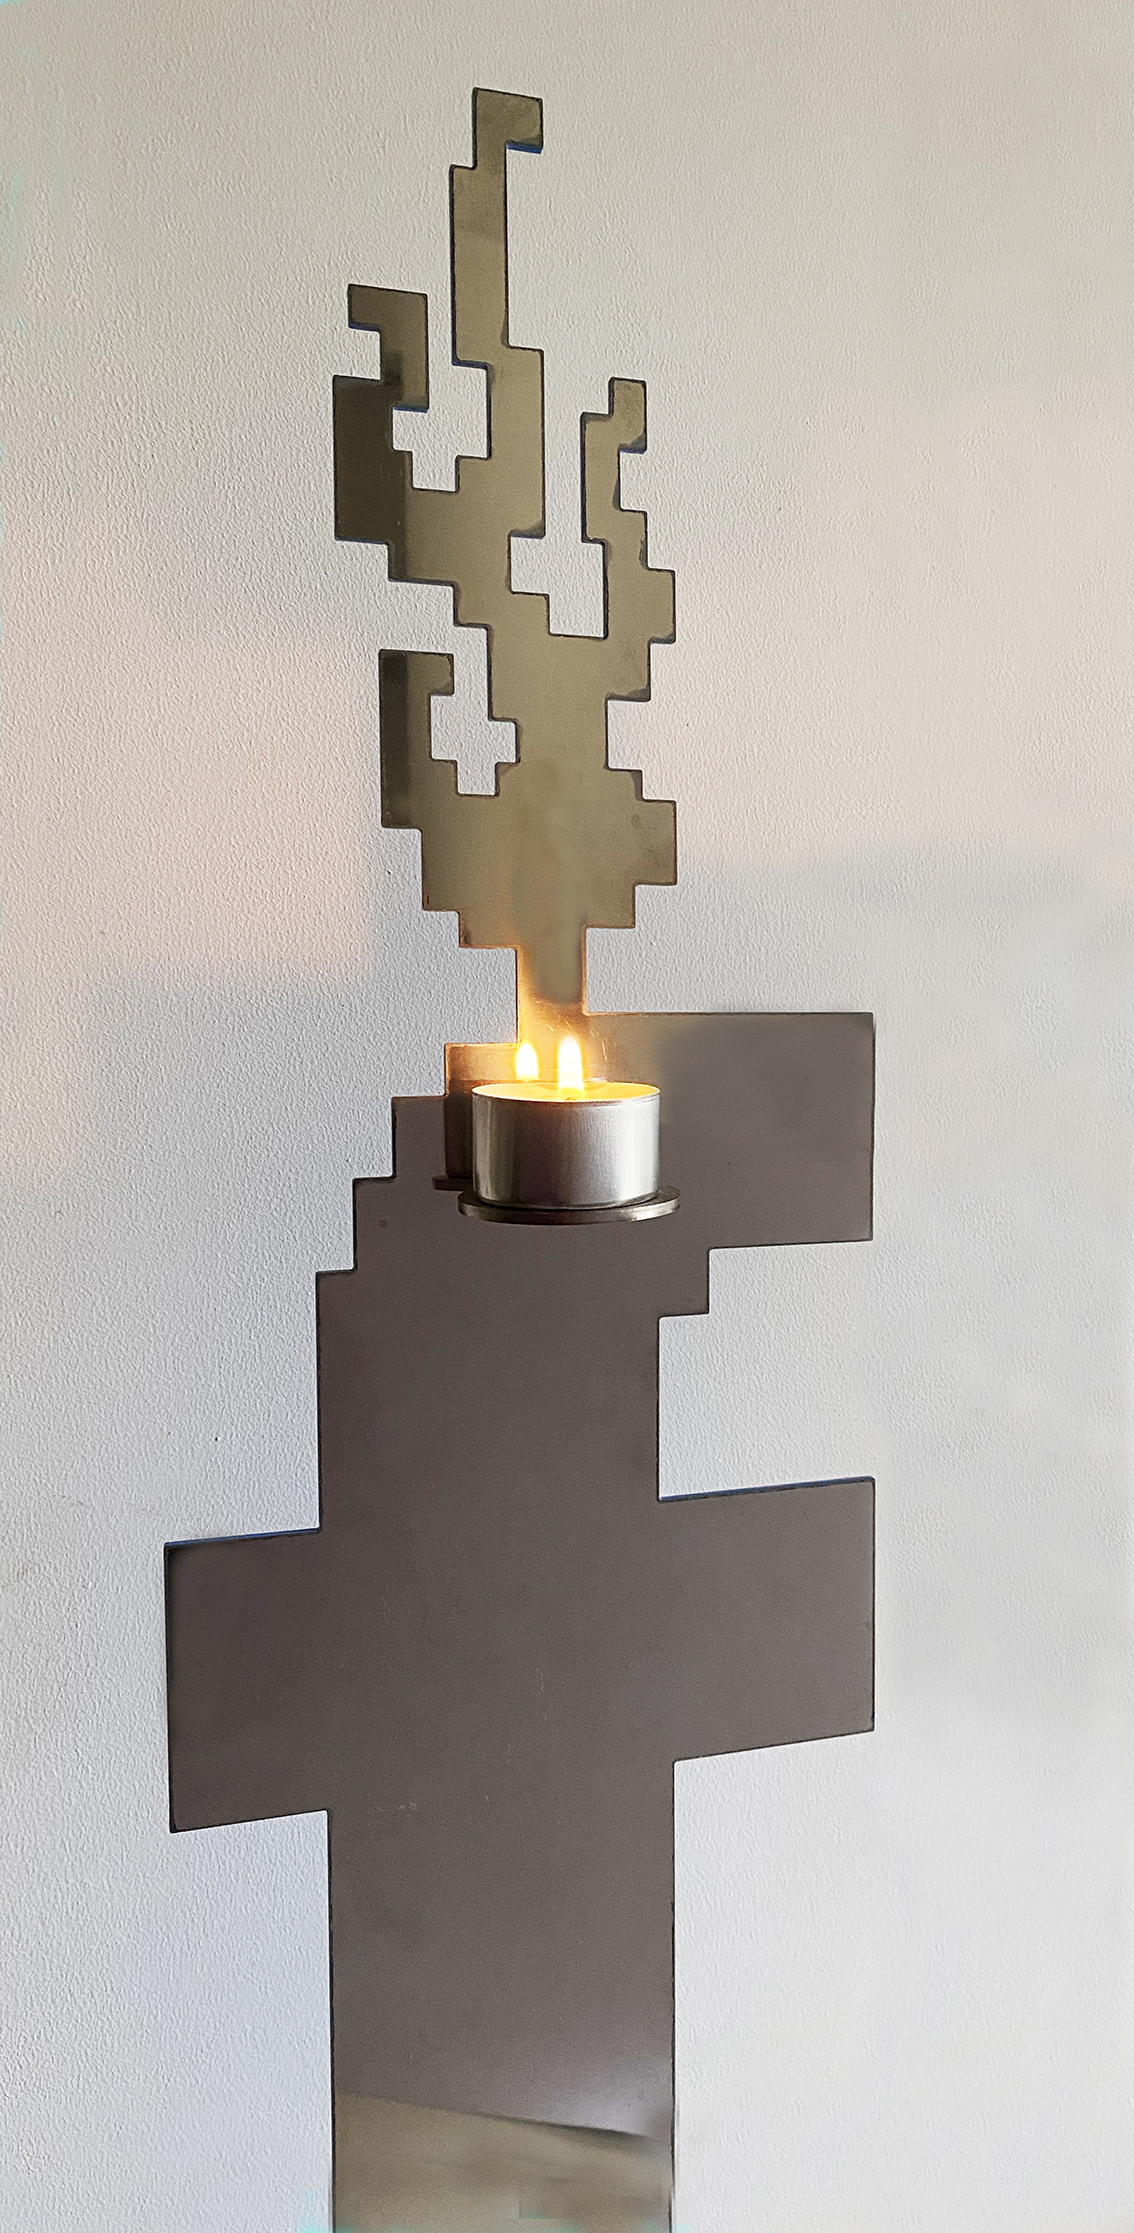 Michele Chiossi scultura fb BURNING FEELINGS, 2016 acciaio, car paint, tea light Facebook zigzag pixel video game riflesso reverie autocombustione fiamma Harley Davidson